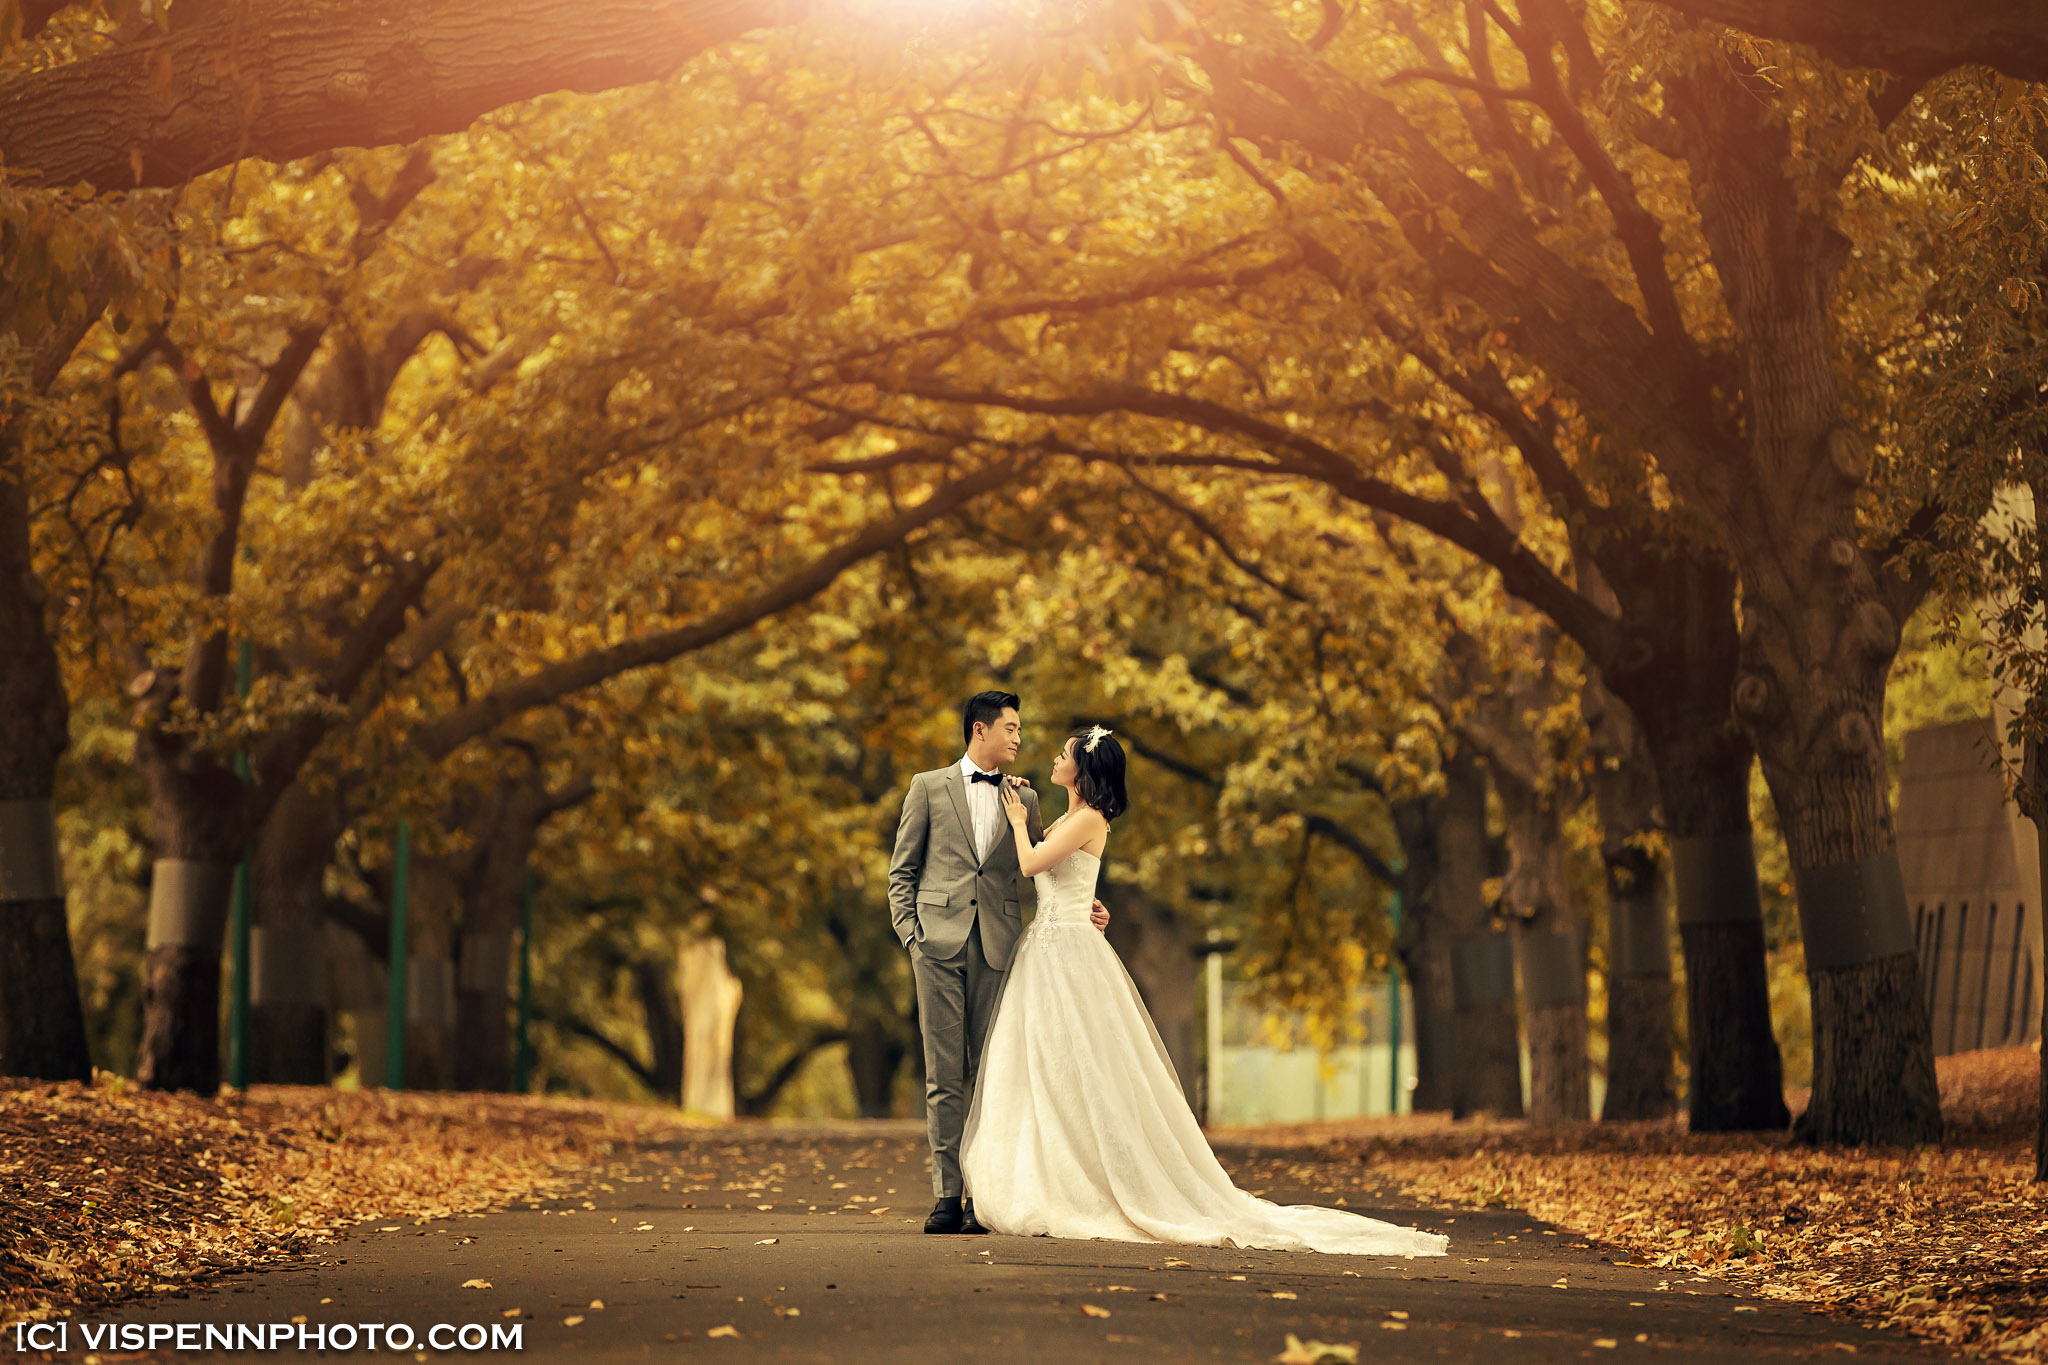 PRE WEDDING Photography Melbourne Pauline 2163